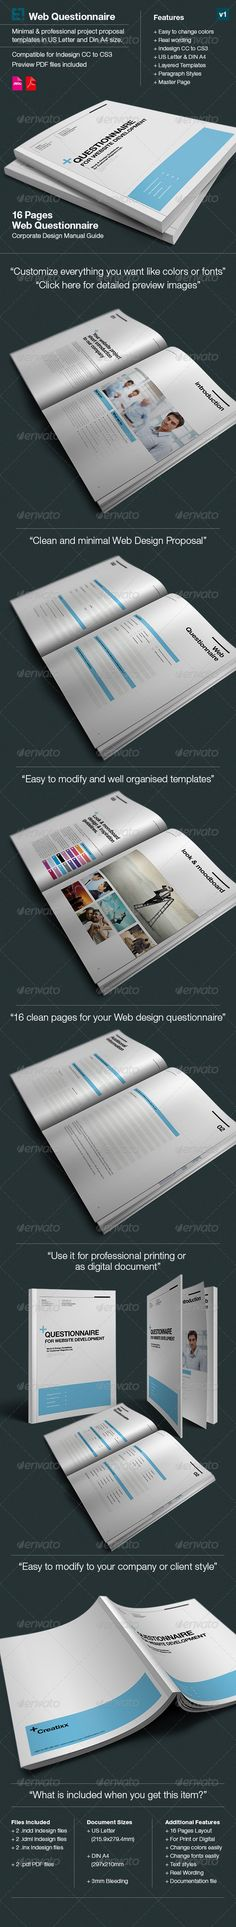 LOBSTERu201d - Proposal Template Full Pack Proposal templates - professional proposal templates